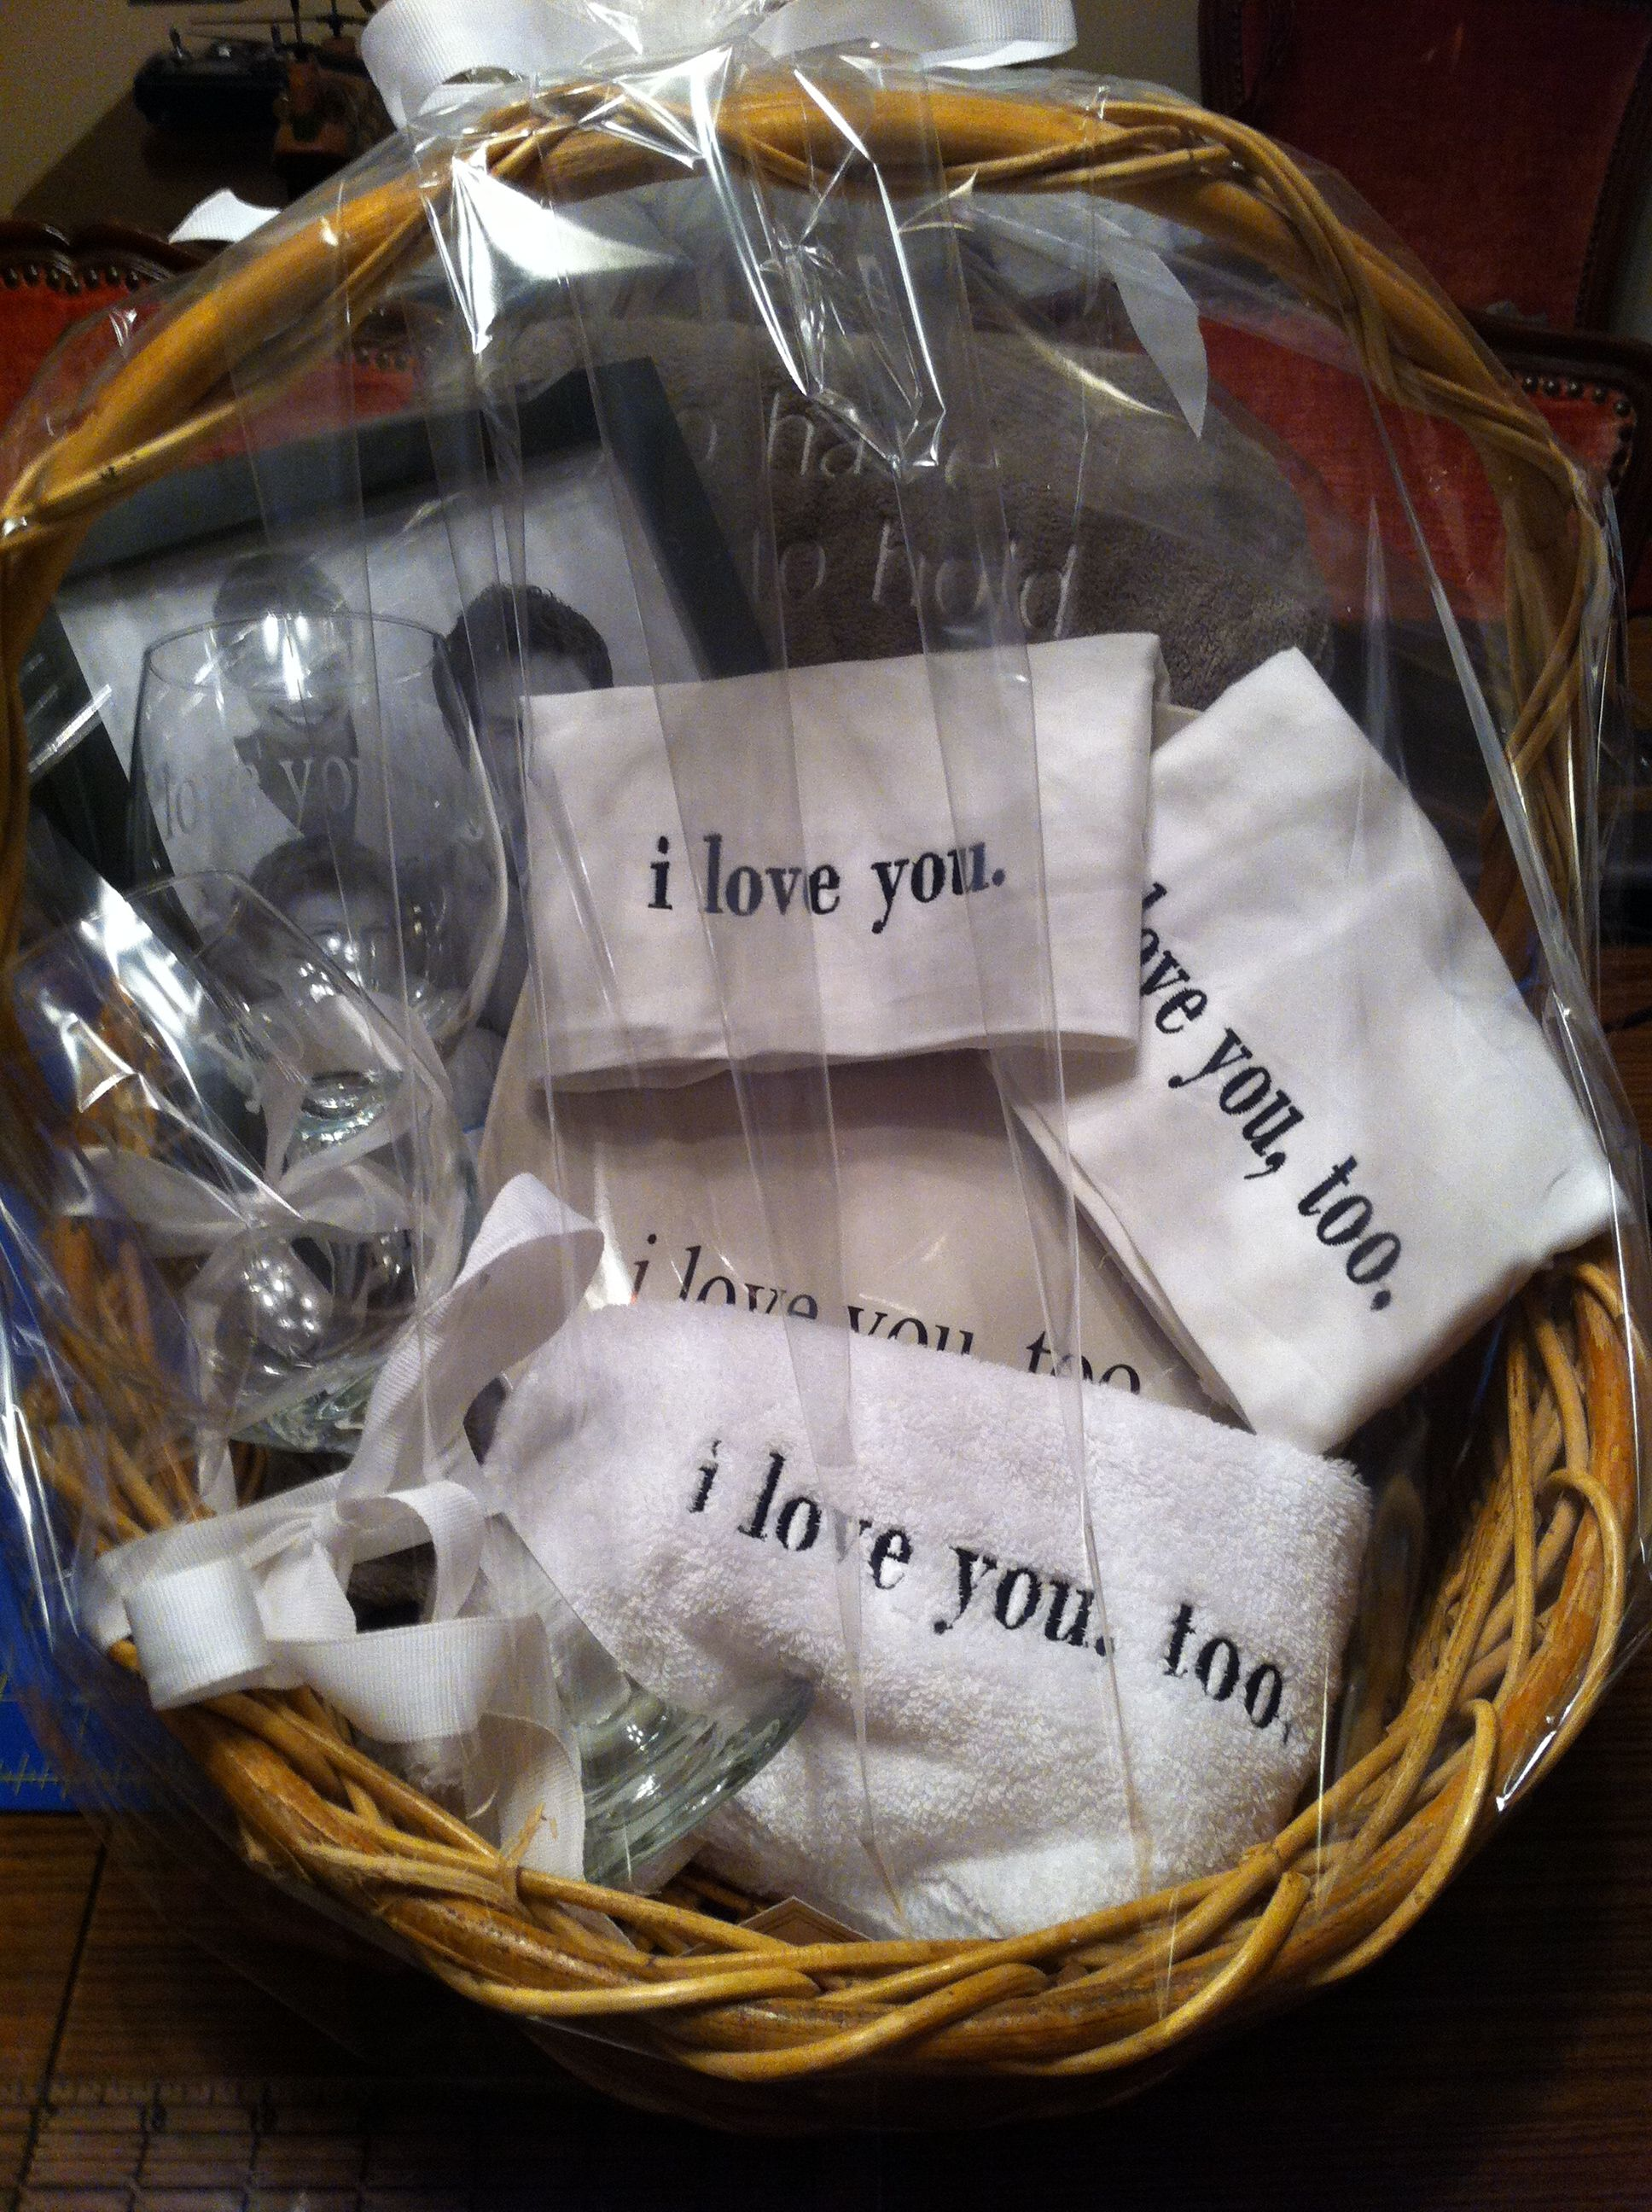 Marriage Retreat Basket Marriage Retreats Marriage Gifts Couple Marriage Conference